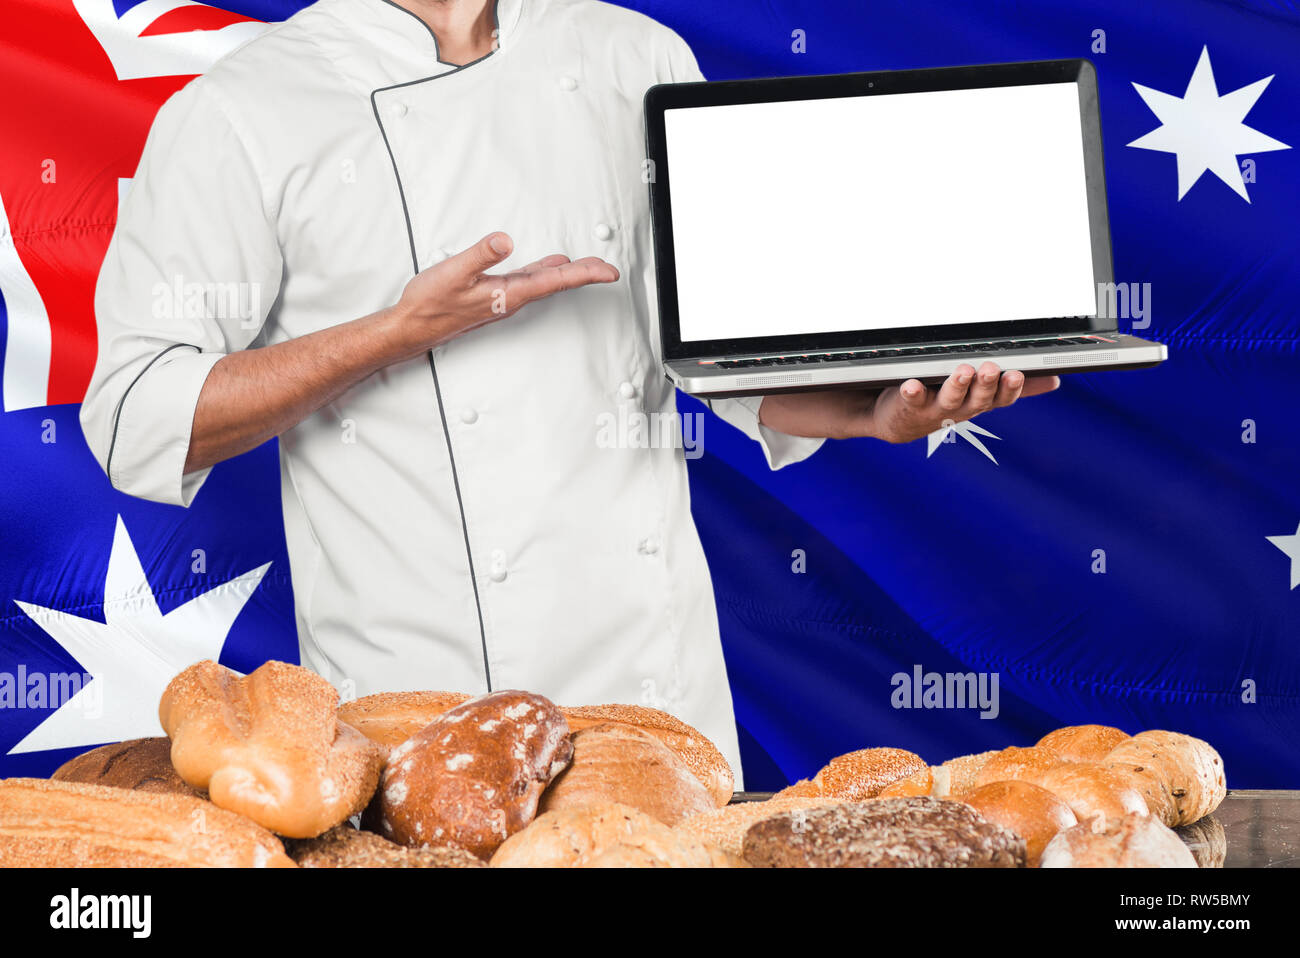 Baker Bread Australia High Resolution Stock Photography And Images Alamy